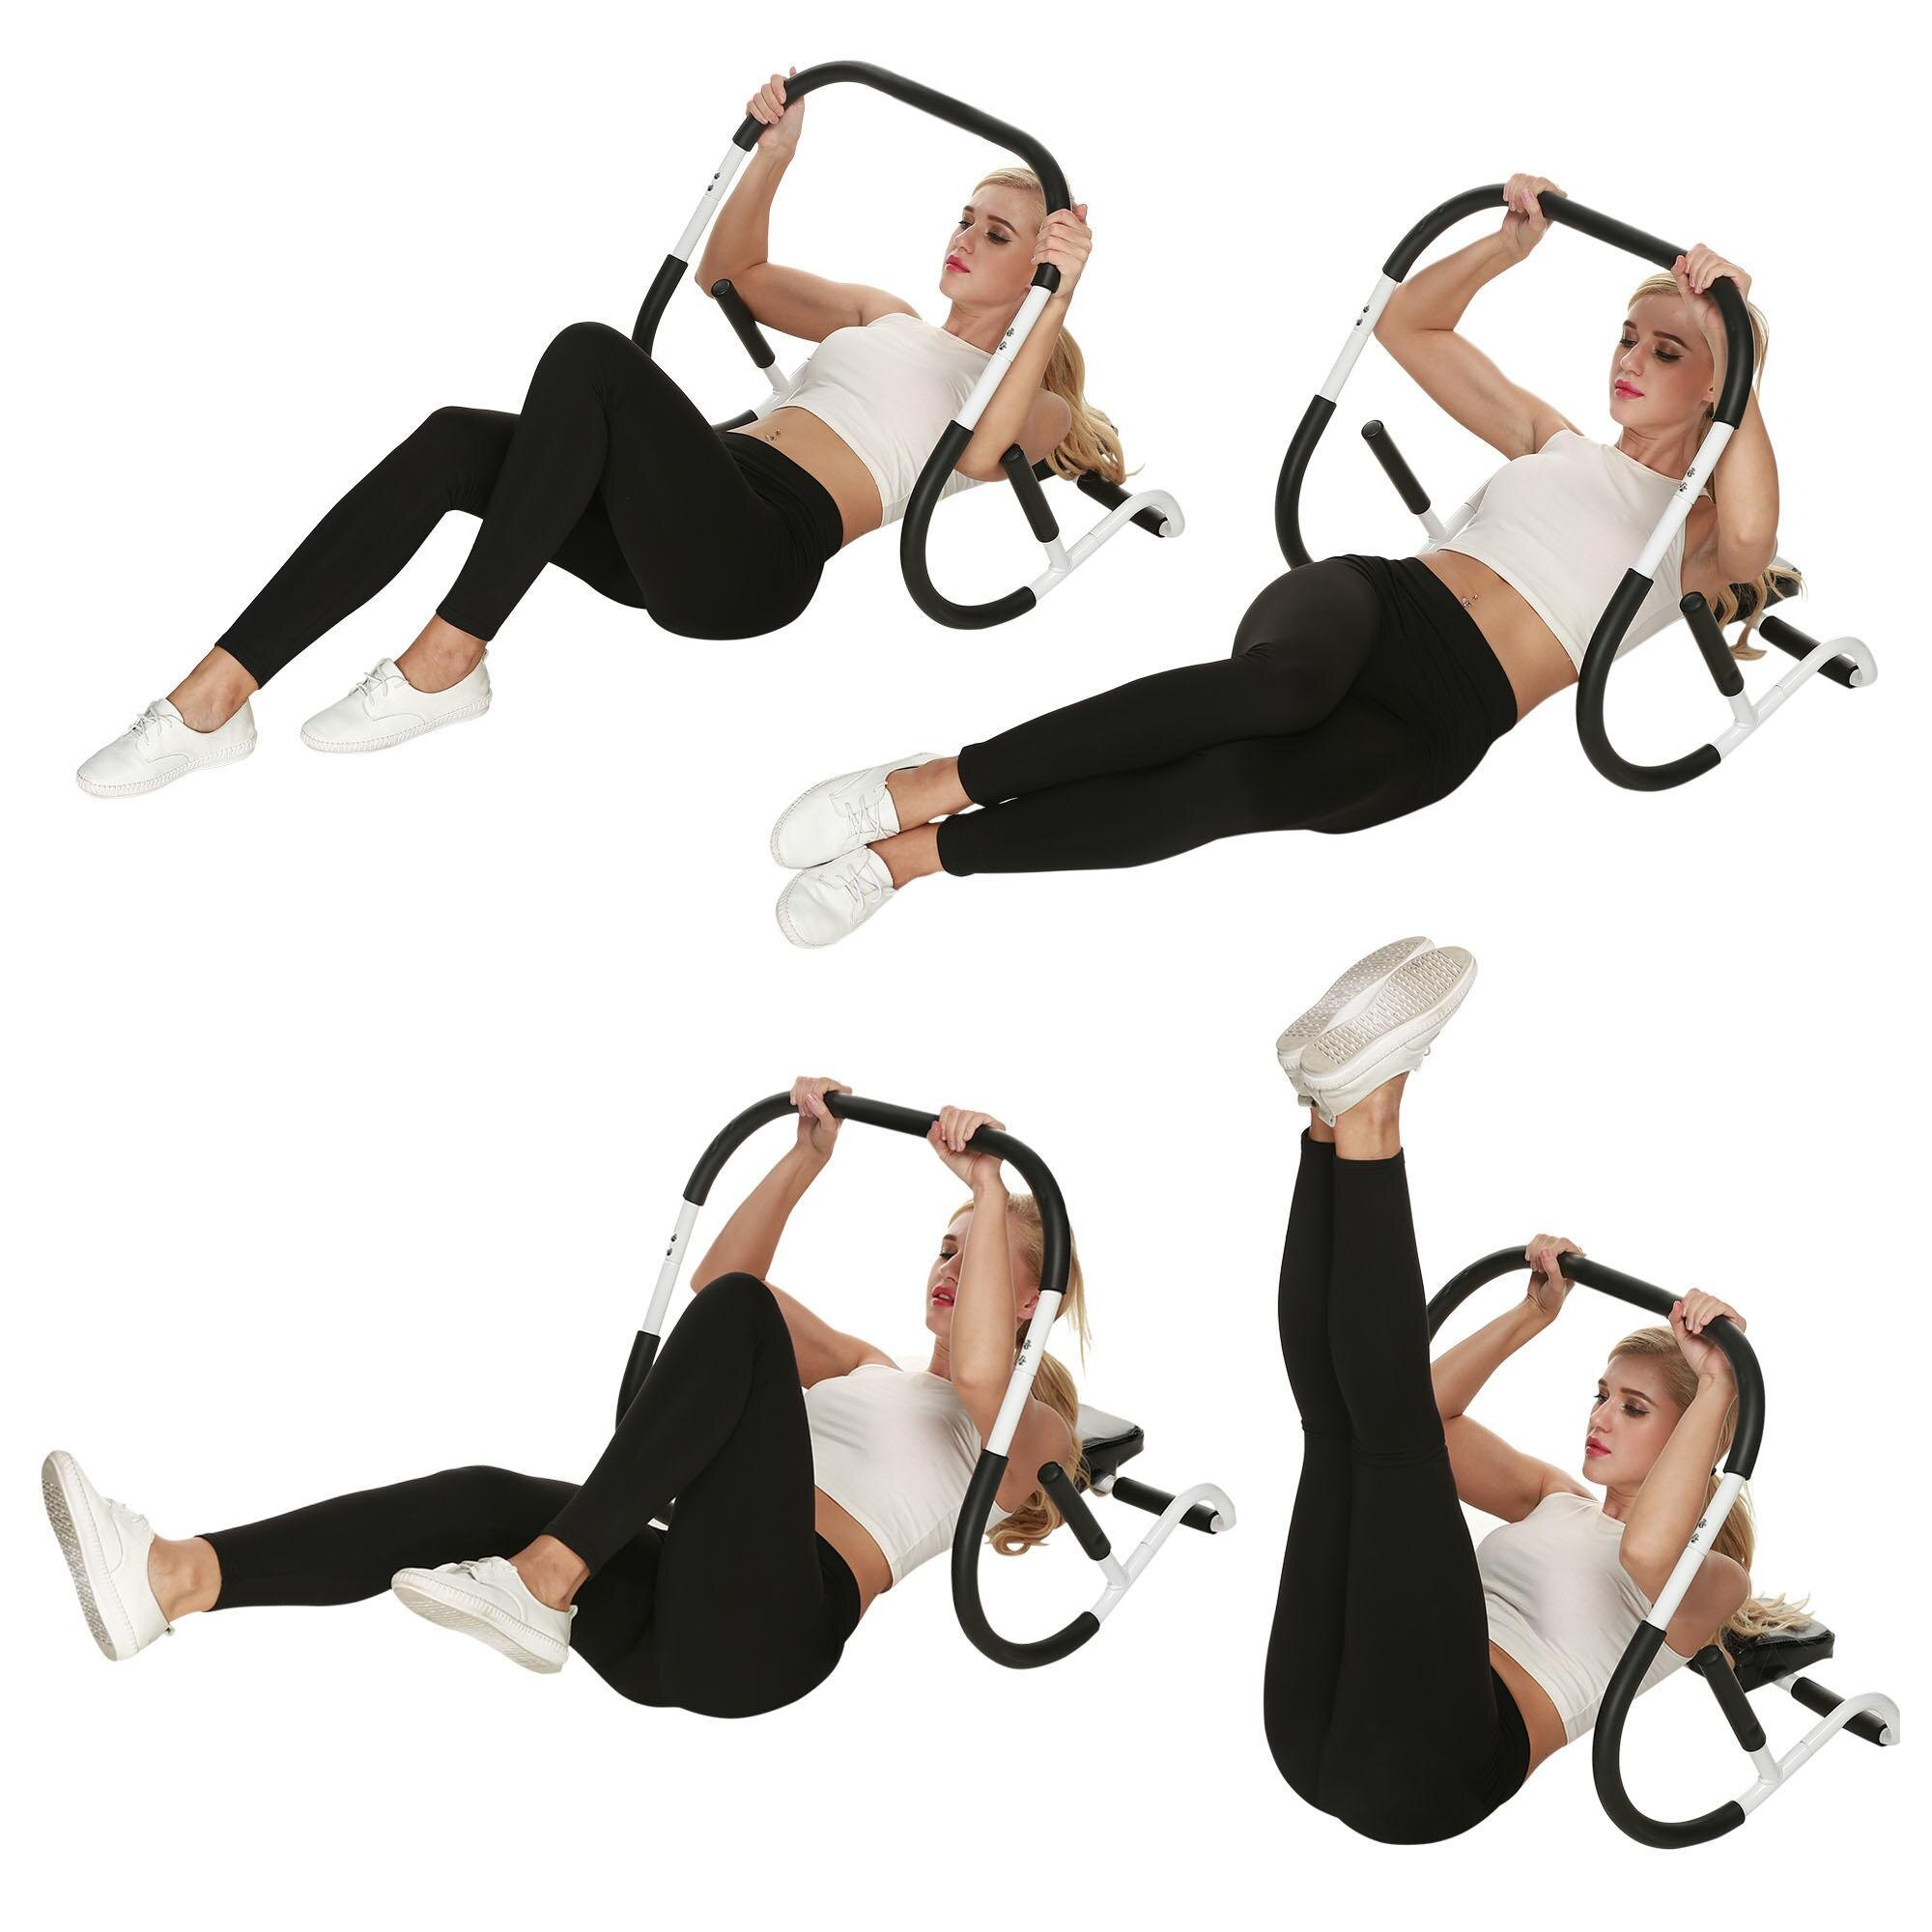 Cosway Ab Roller Crunch Machine Sturdy Fitness Equipment 2